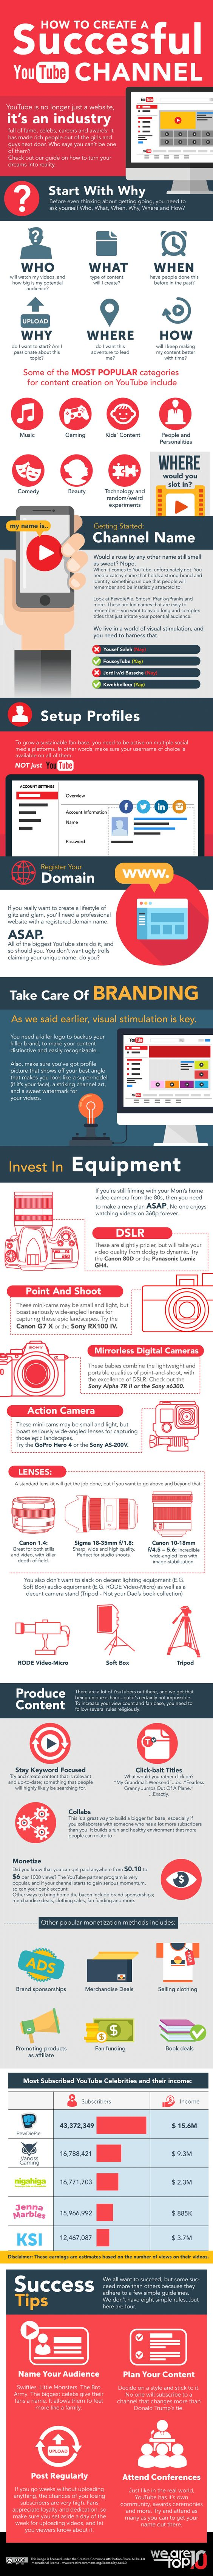 If you ever wondered how to build a successful YouTube channel, this is the infographic for you. It explains exactly how to be successful (and make money) with YouTube videos.